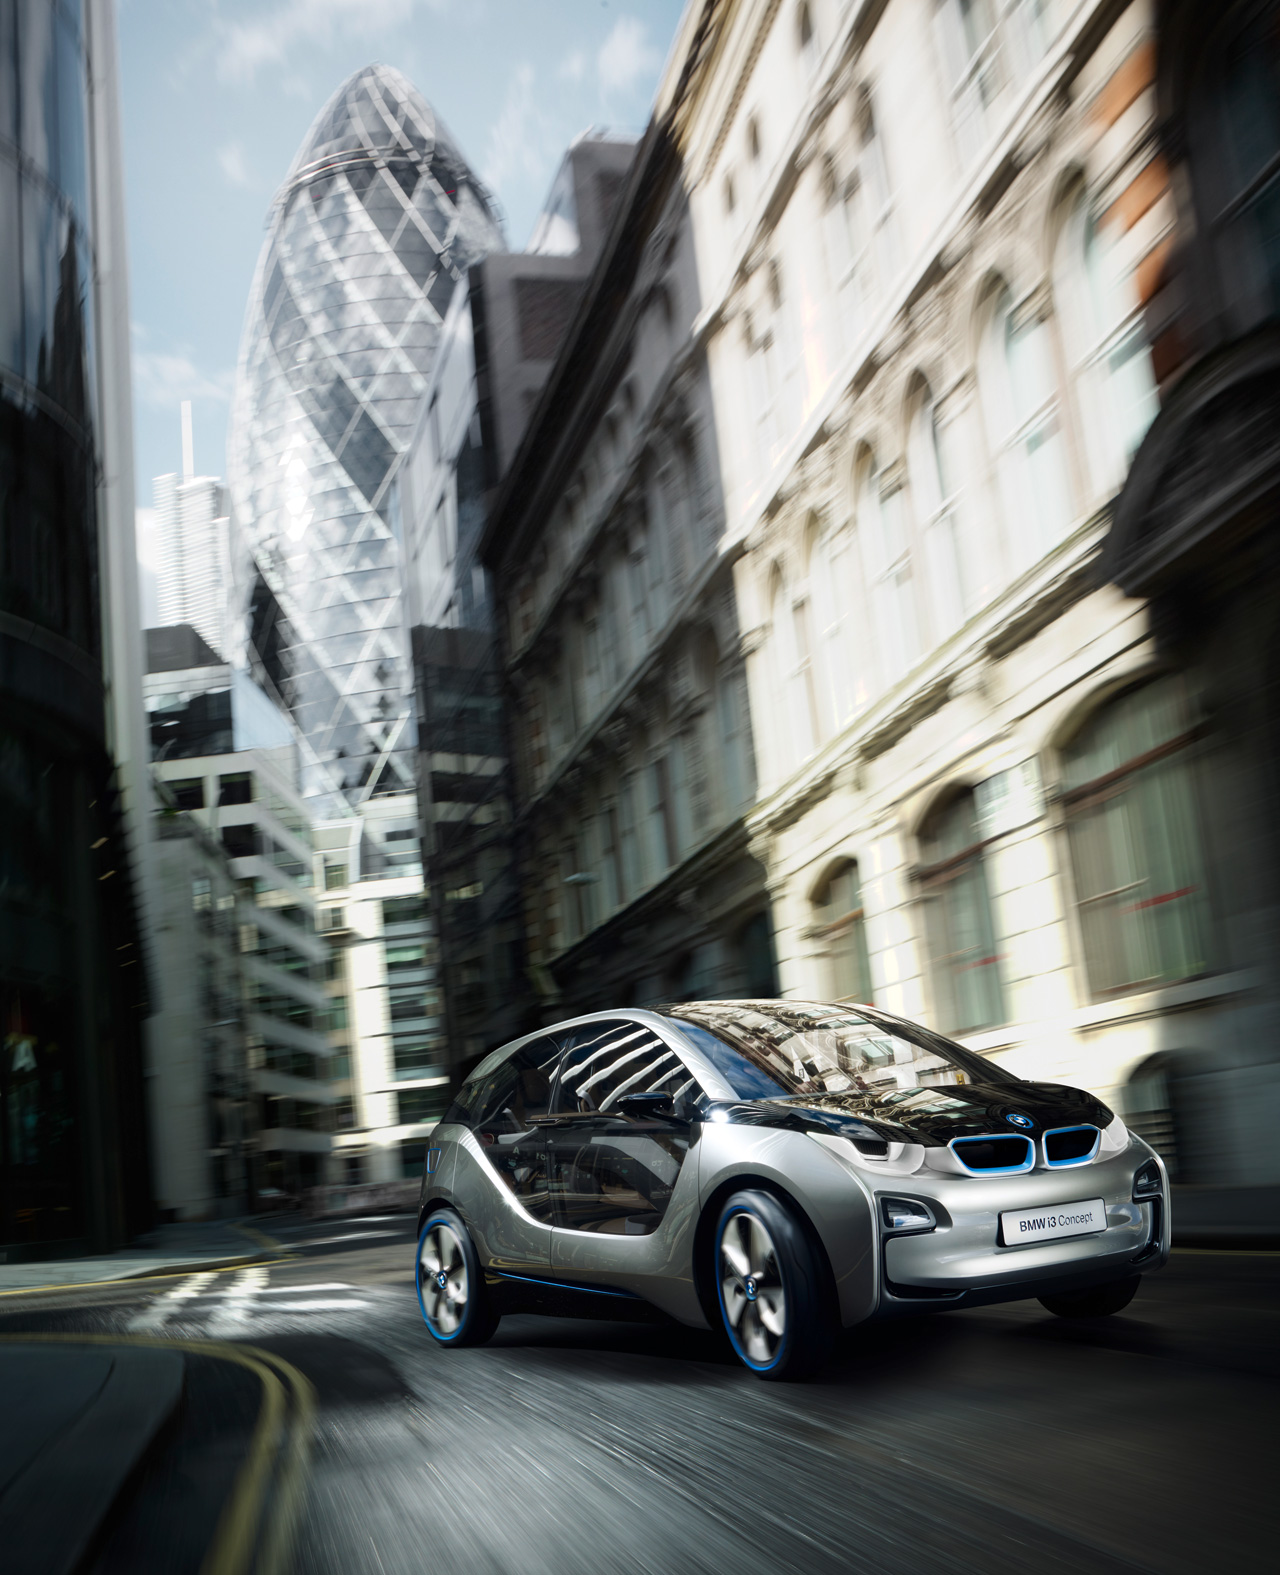 BMW I3 Gets Luxury Makeover For Opening London BMW I Store